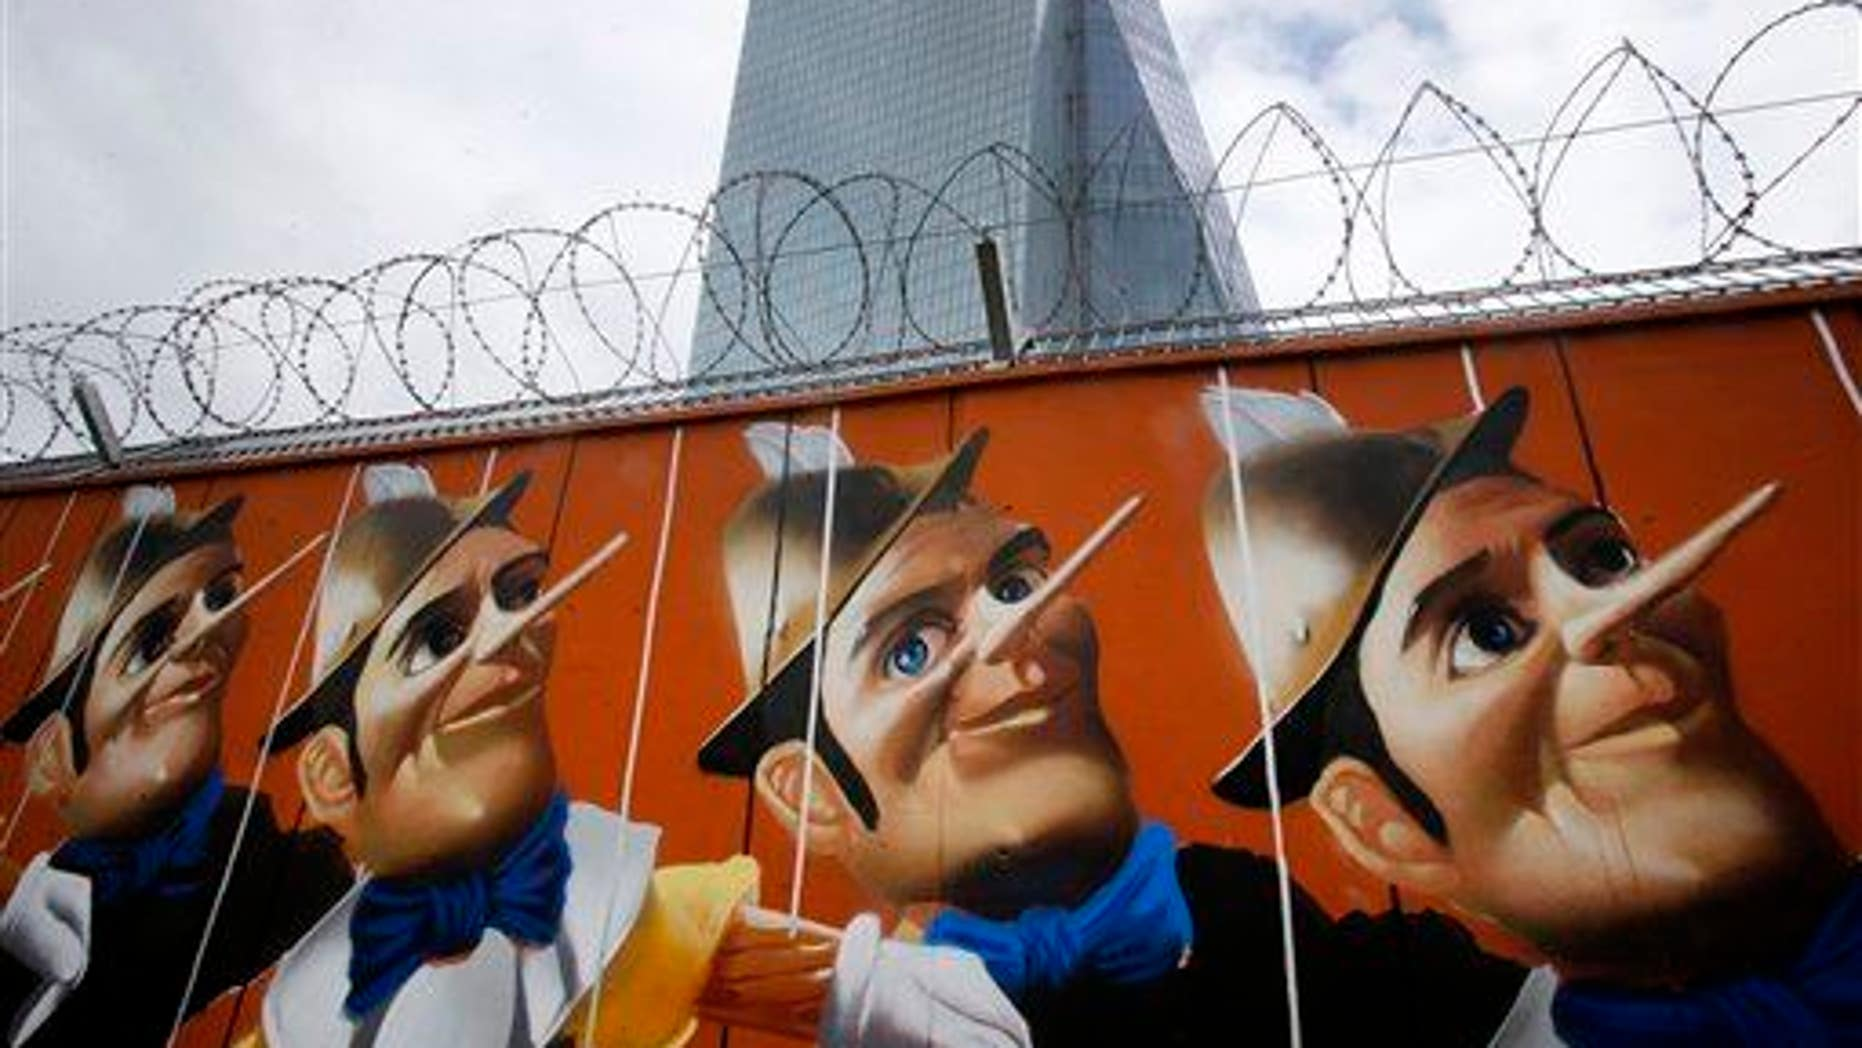 Graffiti is painted on a fence around the construction site of the new HQ of the European Central Bank. The graffiti was created by German street artist Case, who painted 16 Pinocchios.